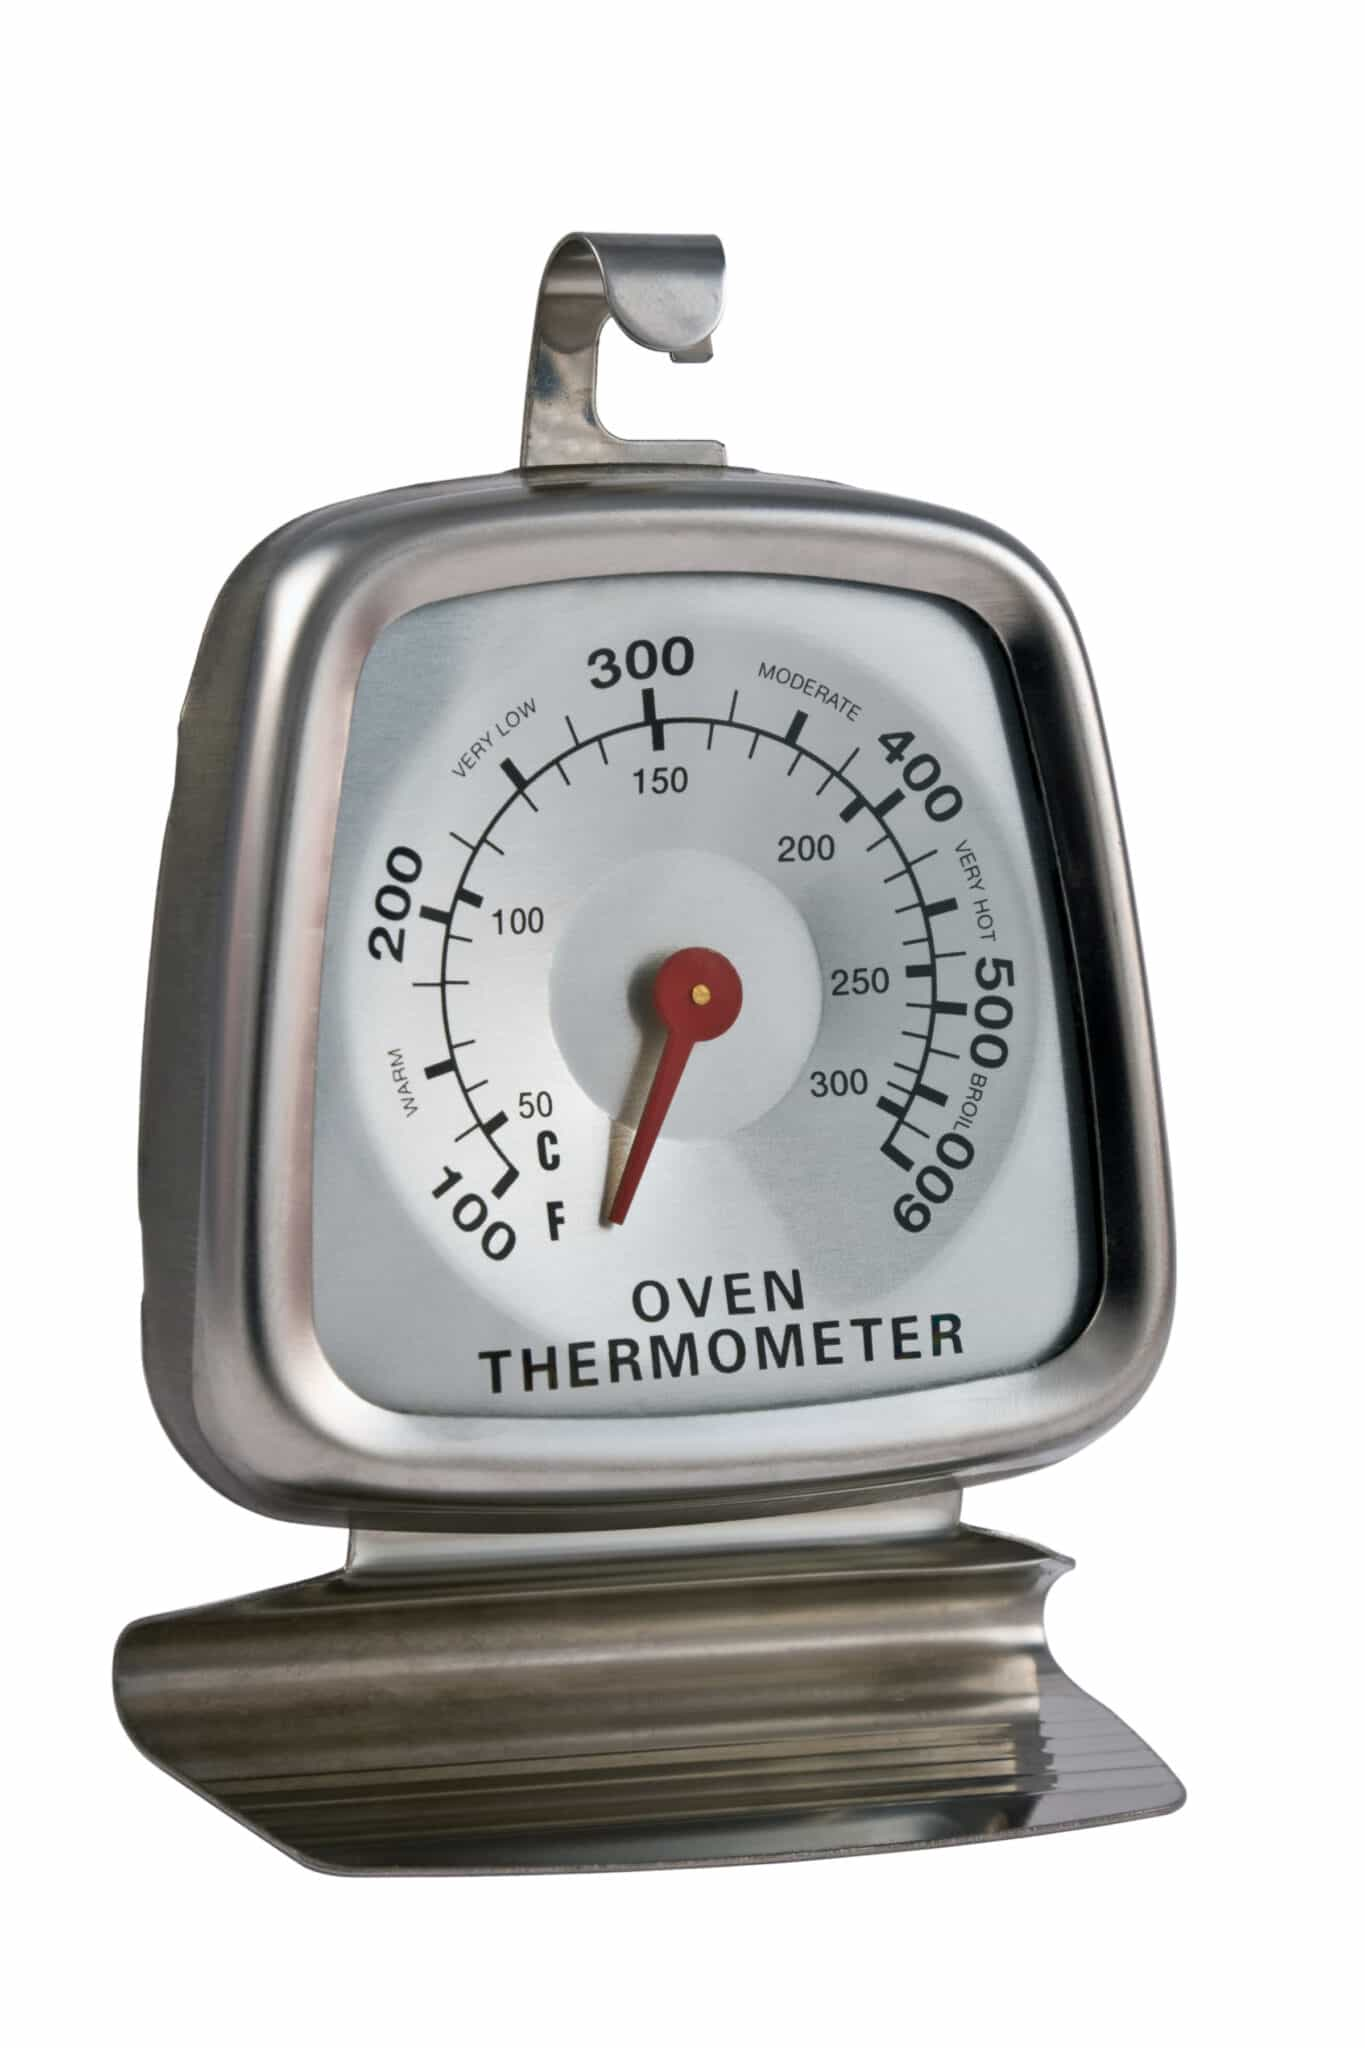 An oven thermometer on a bright white back background